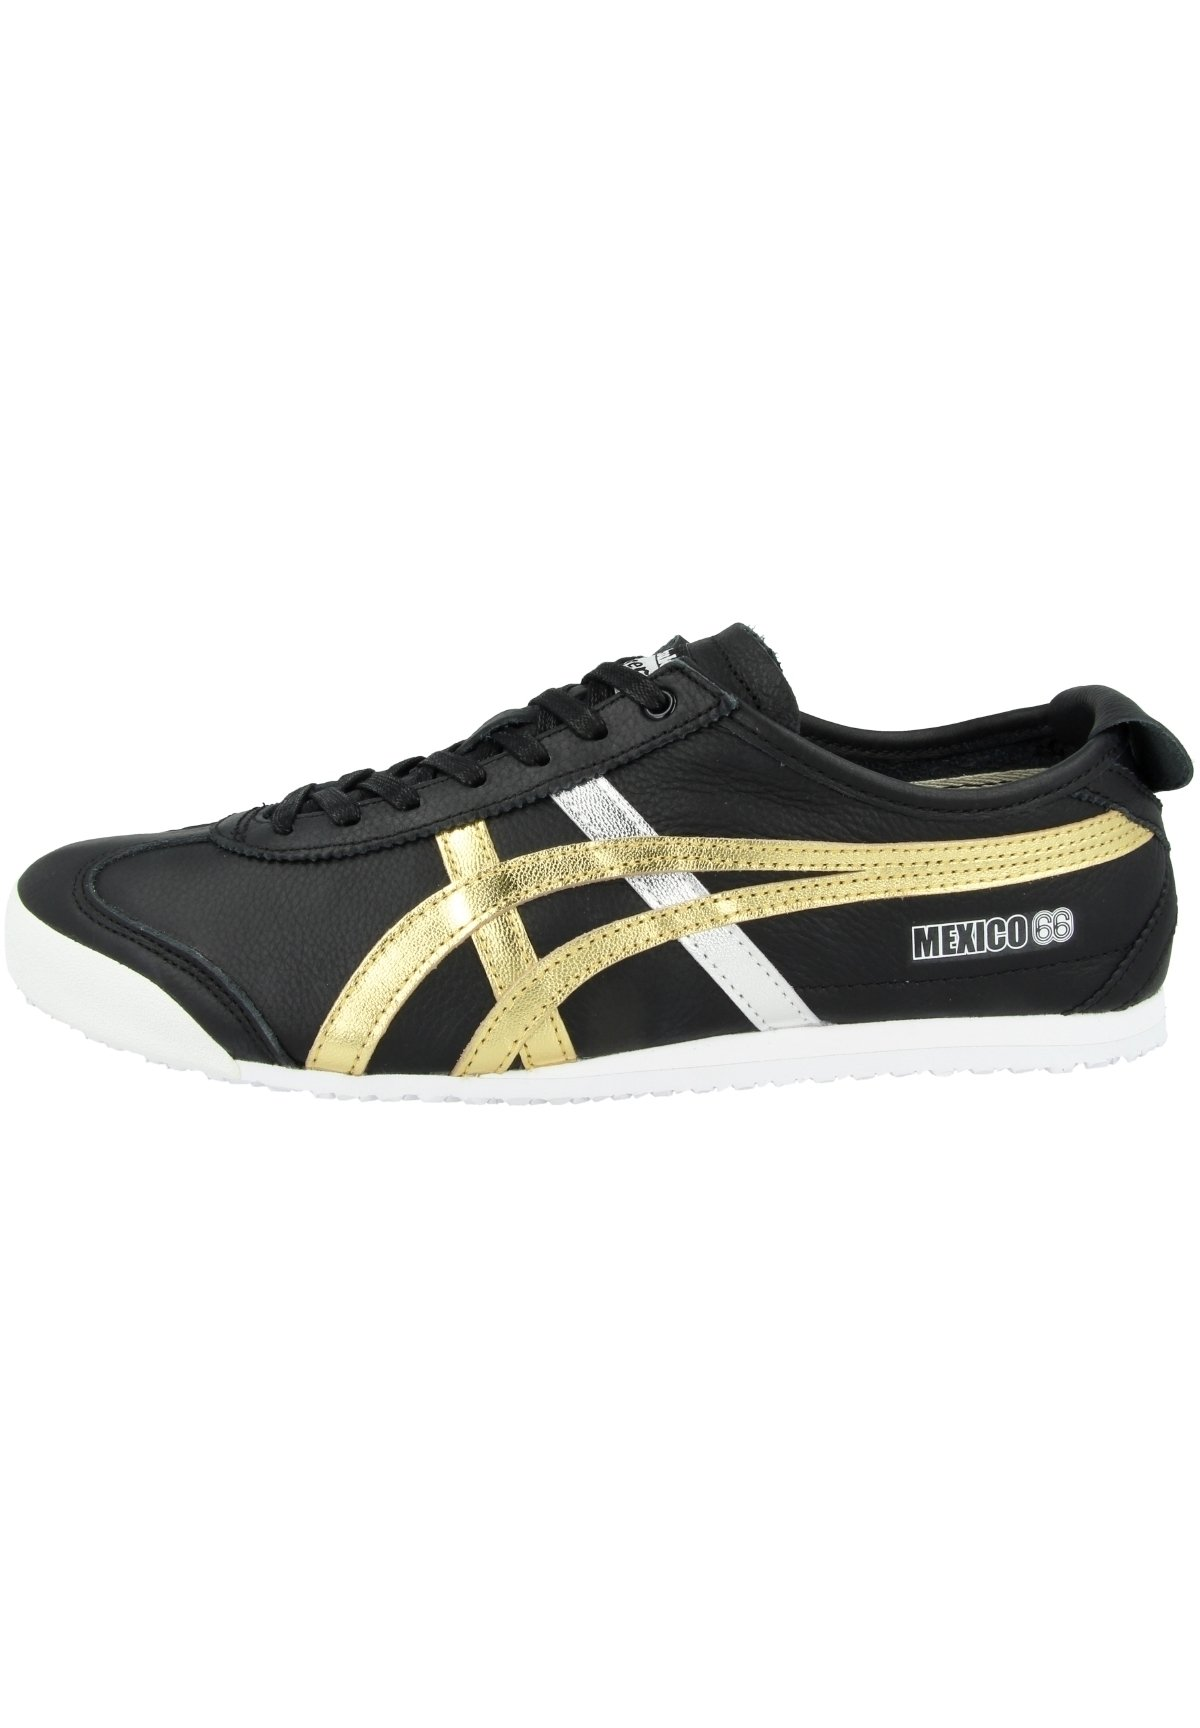 Donna MEXICO 66 - Sneakers basse - black-gold